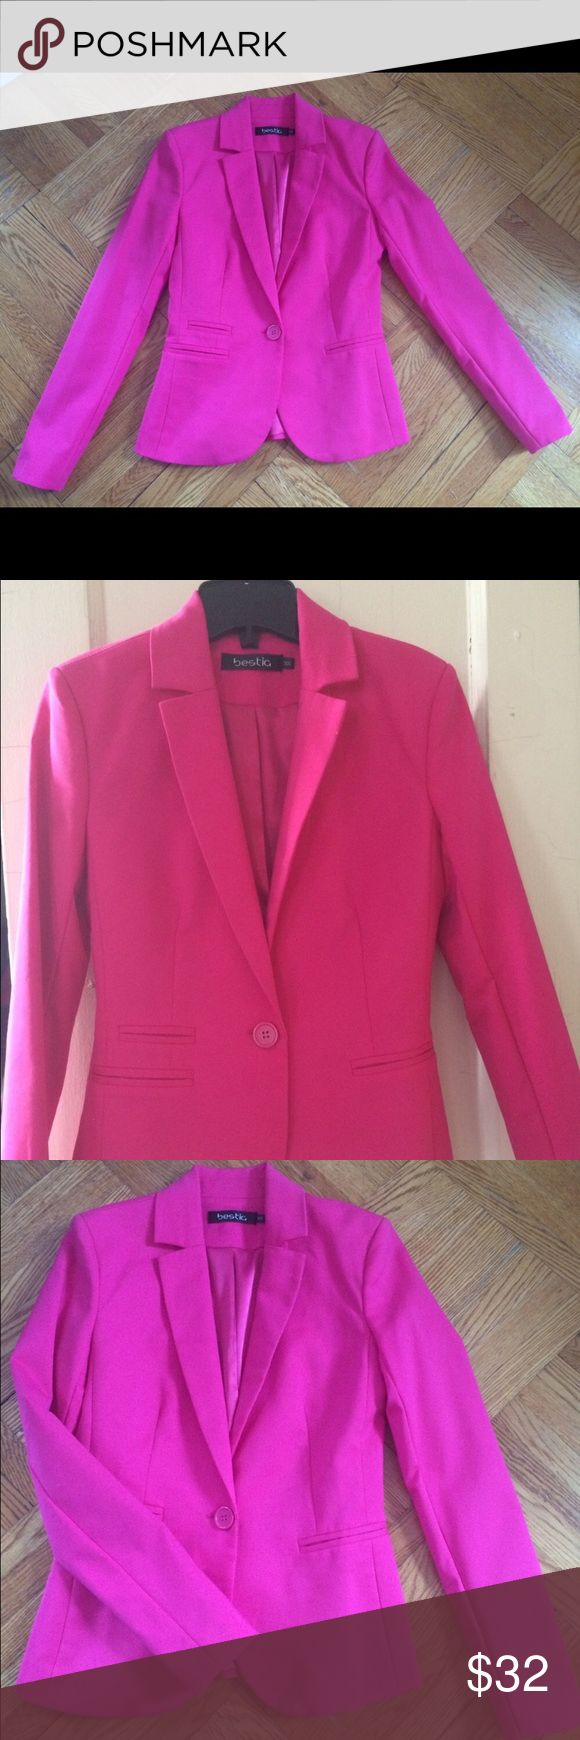 Women's hot pink blazer Perfect condition! Beautiful fit :) ** very similar to the hot pink Lilly pulitzer blazers Lilly Pulitzer Jackets & Coats Blazers